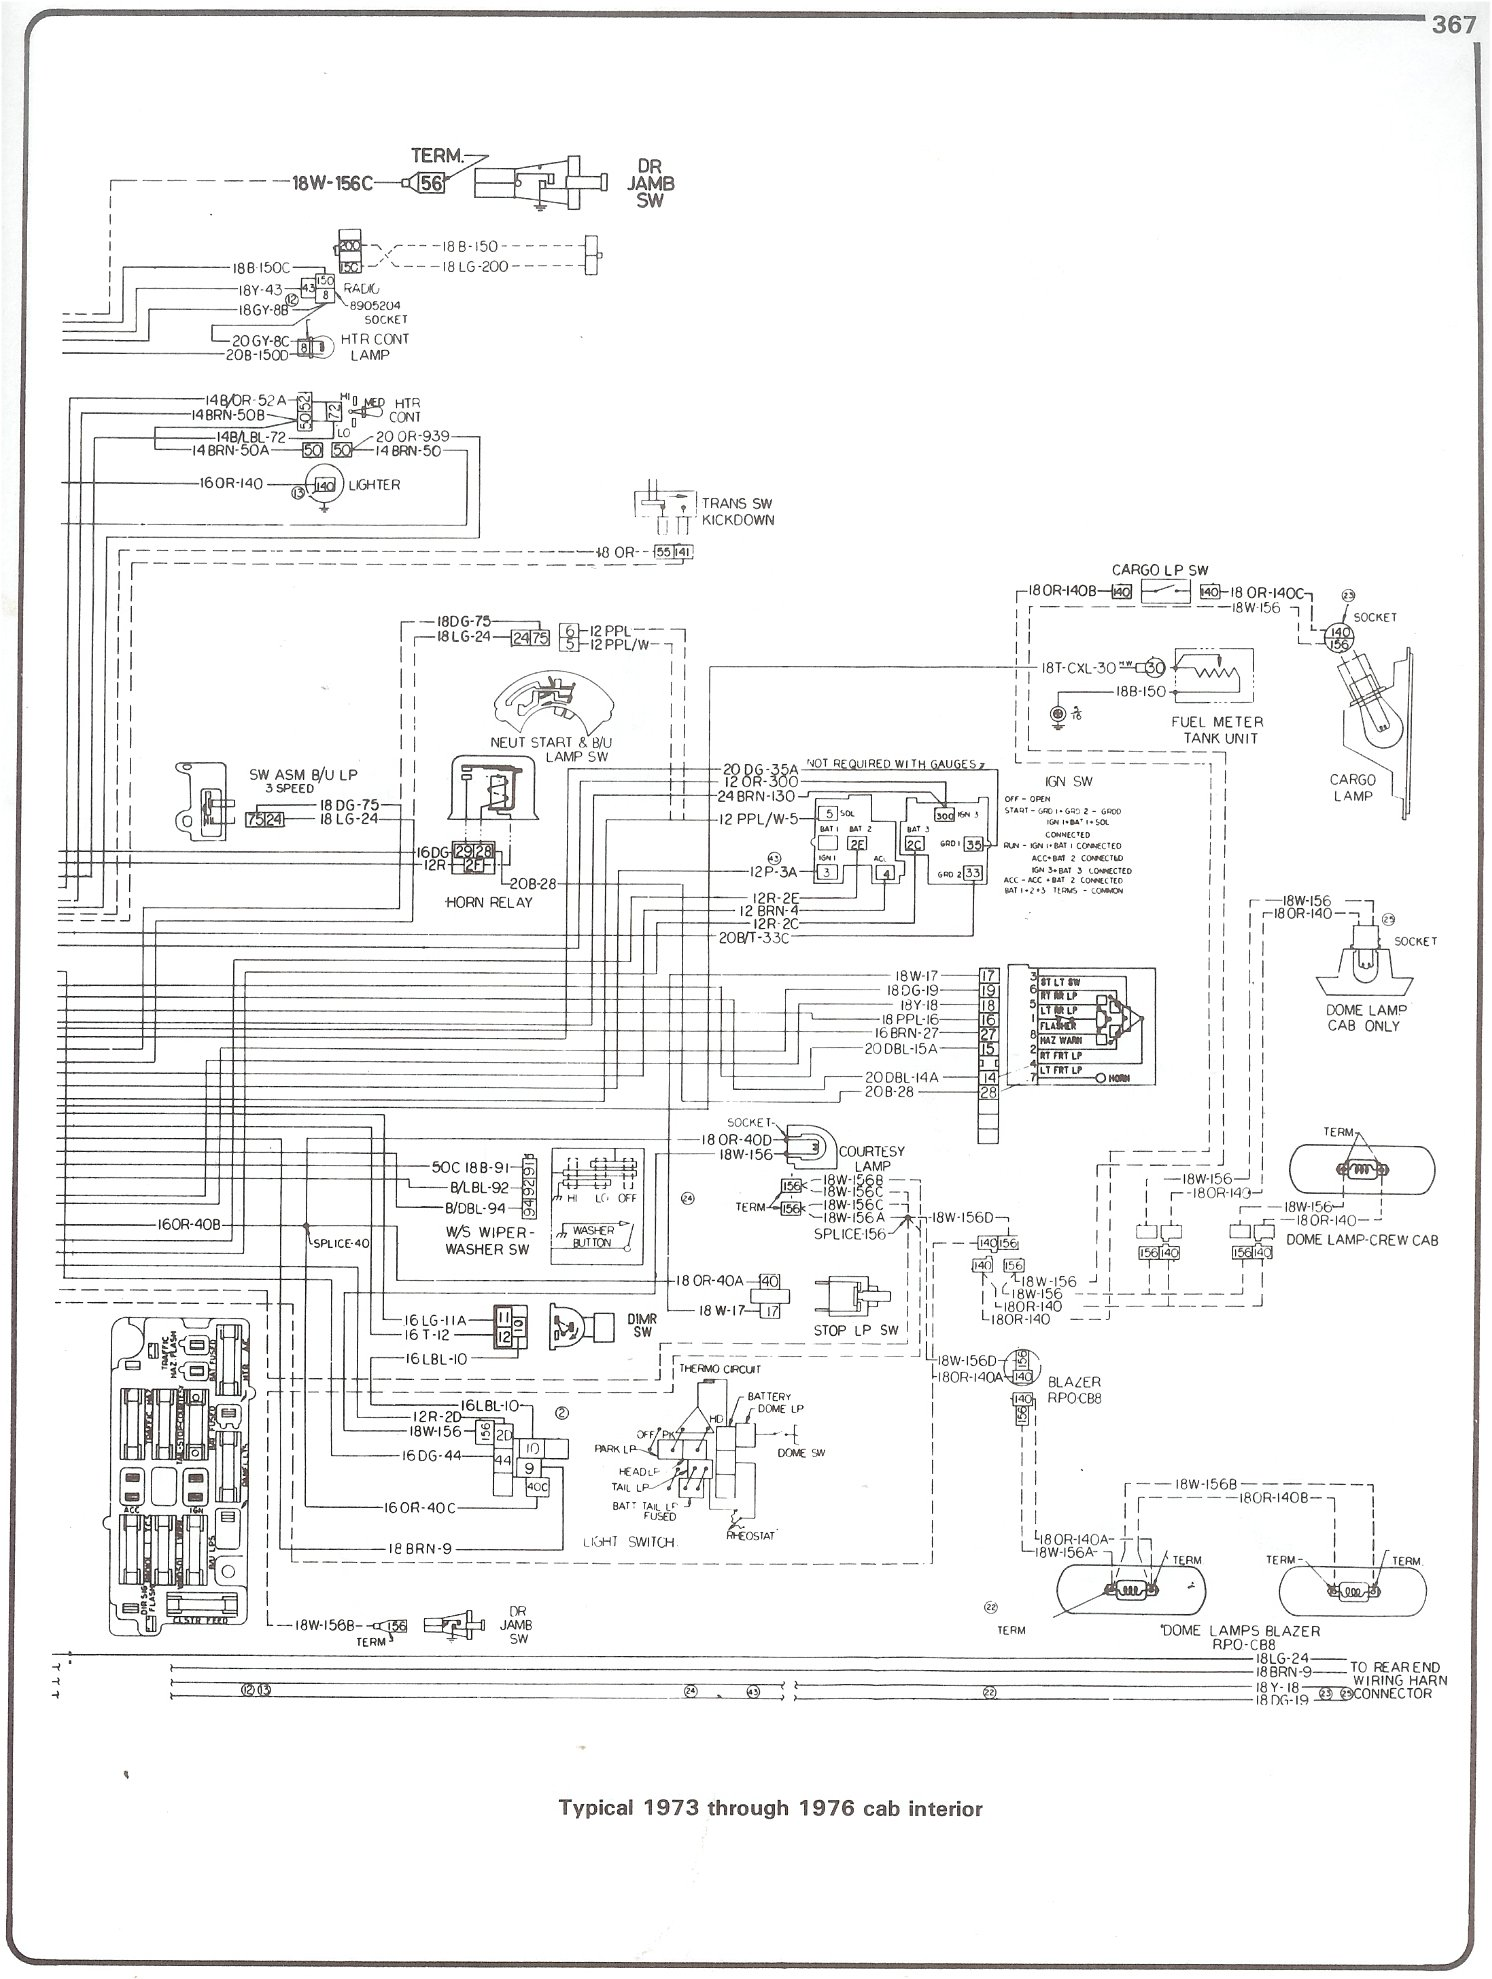 73 76_cab_inter electrical diagrams chevy only page 2 truck forum 87 chevy truck wiring diagram at creativeand.co